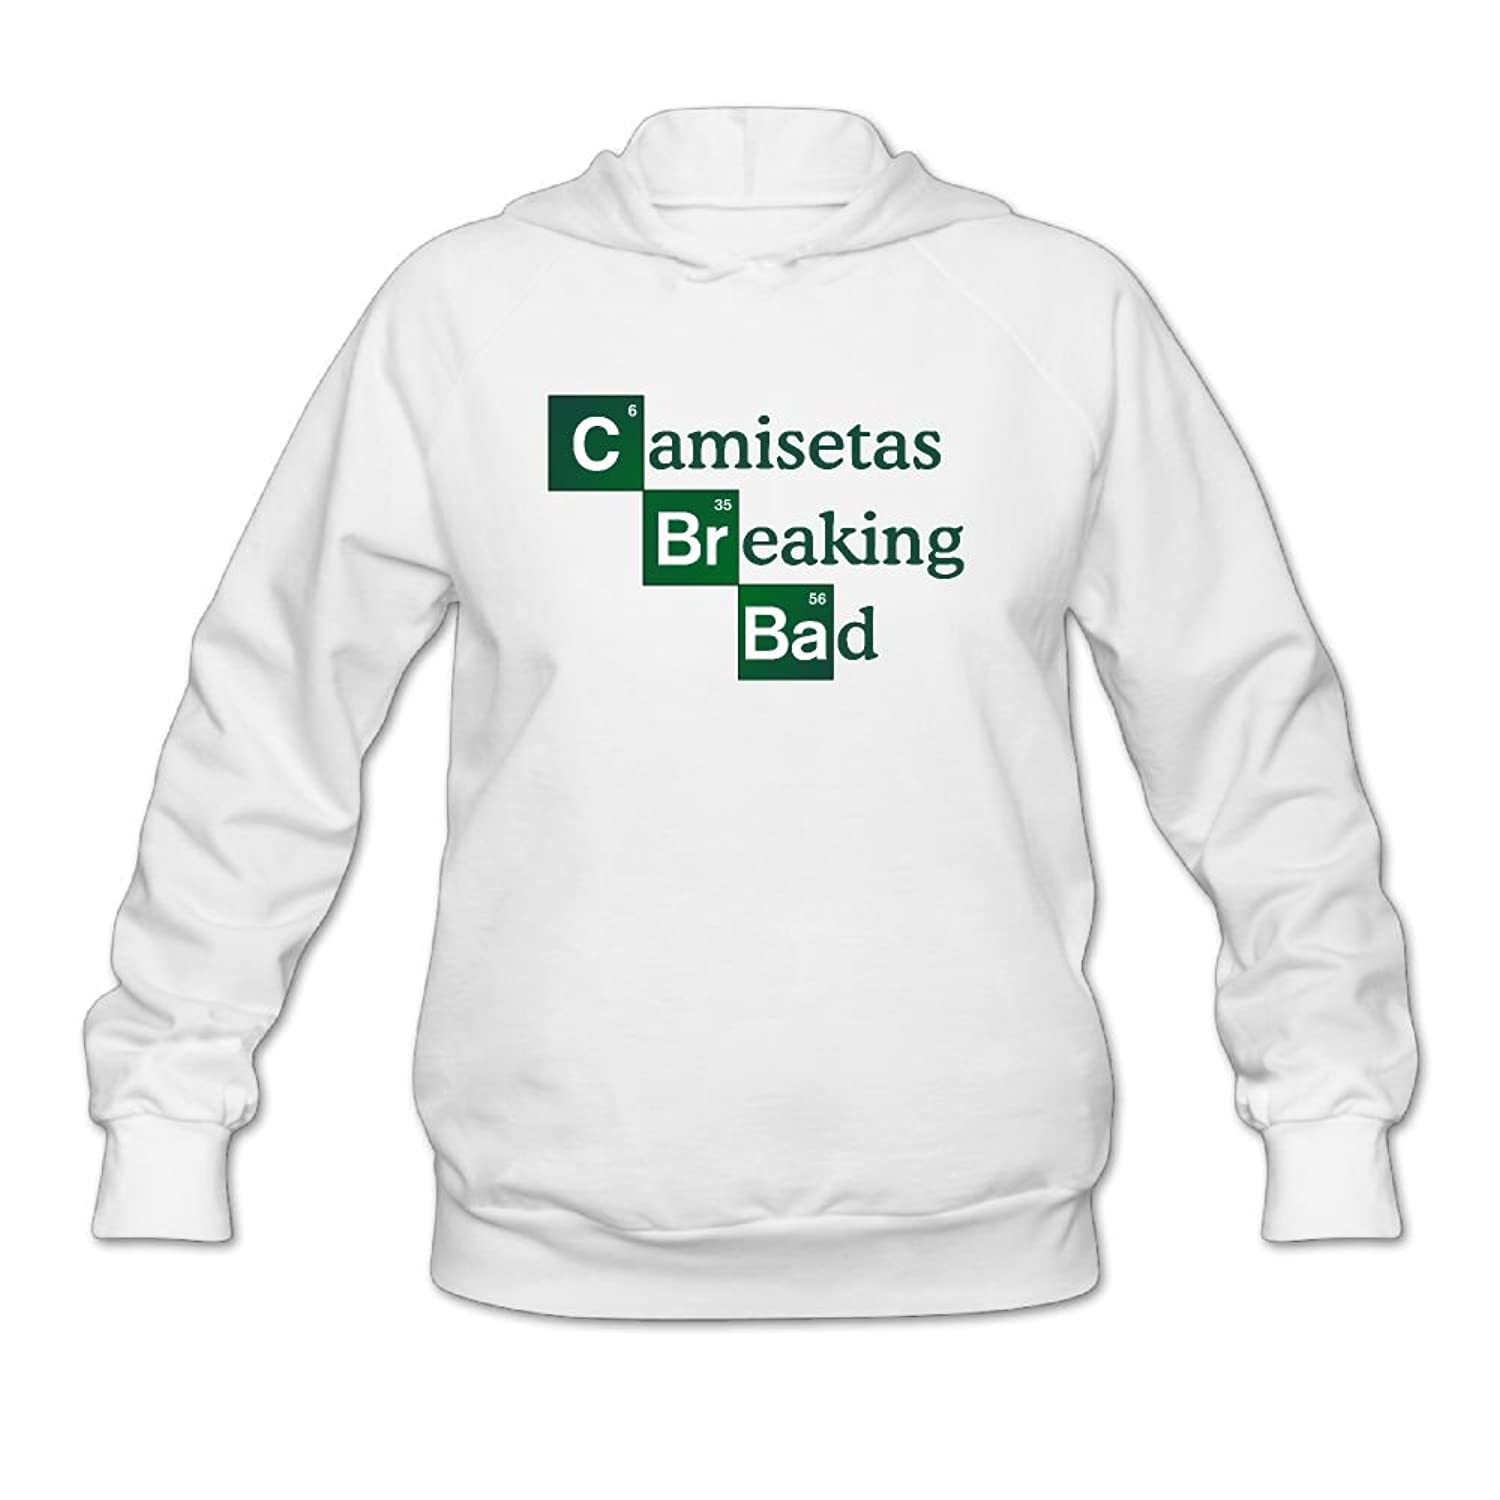 Amazon.com: Lucy Jim Womens Camisetas Breaking Bad Pullover Hooded Sweatshirt White: Clothing